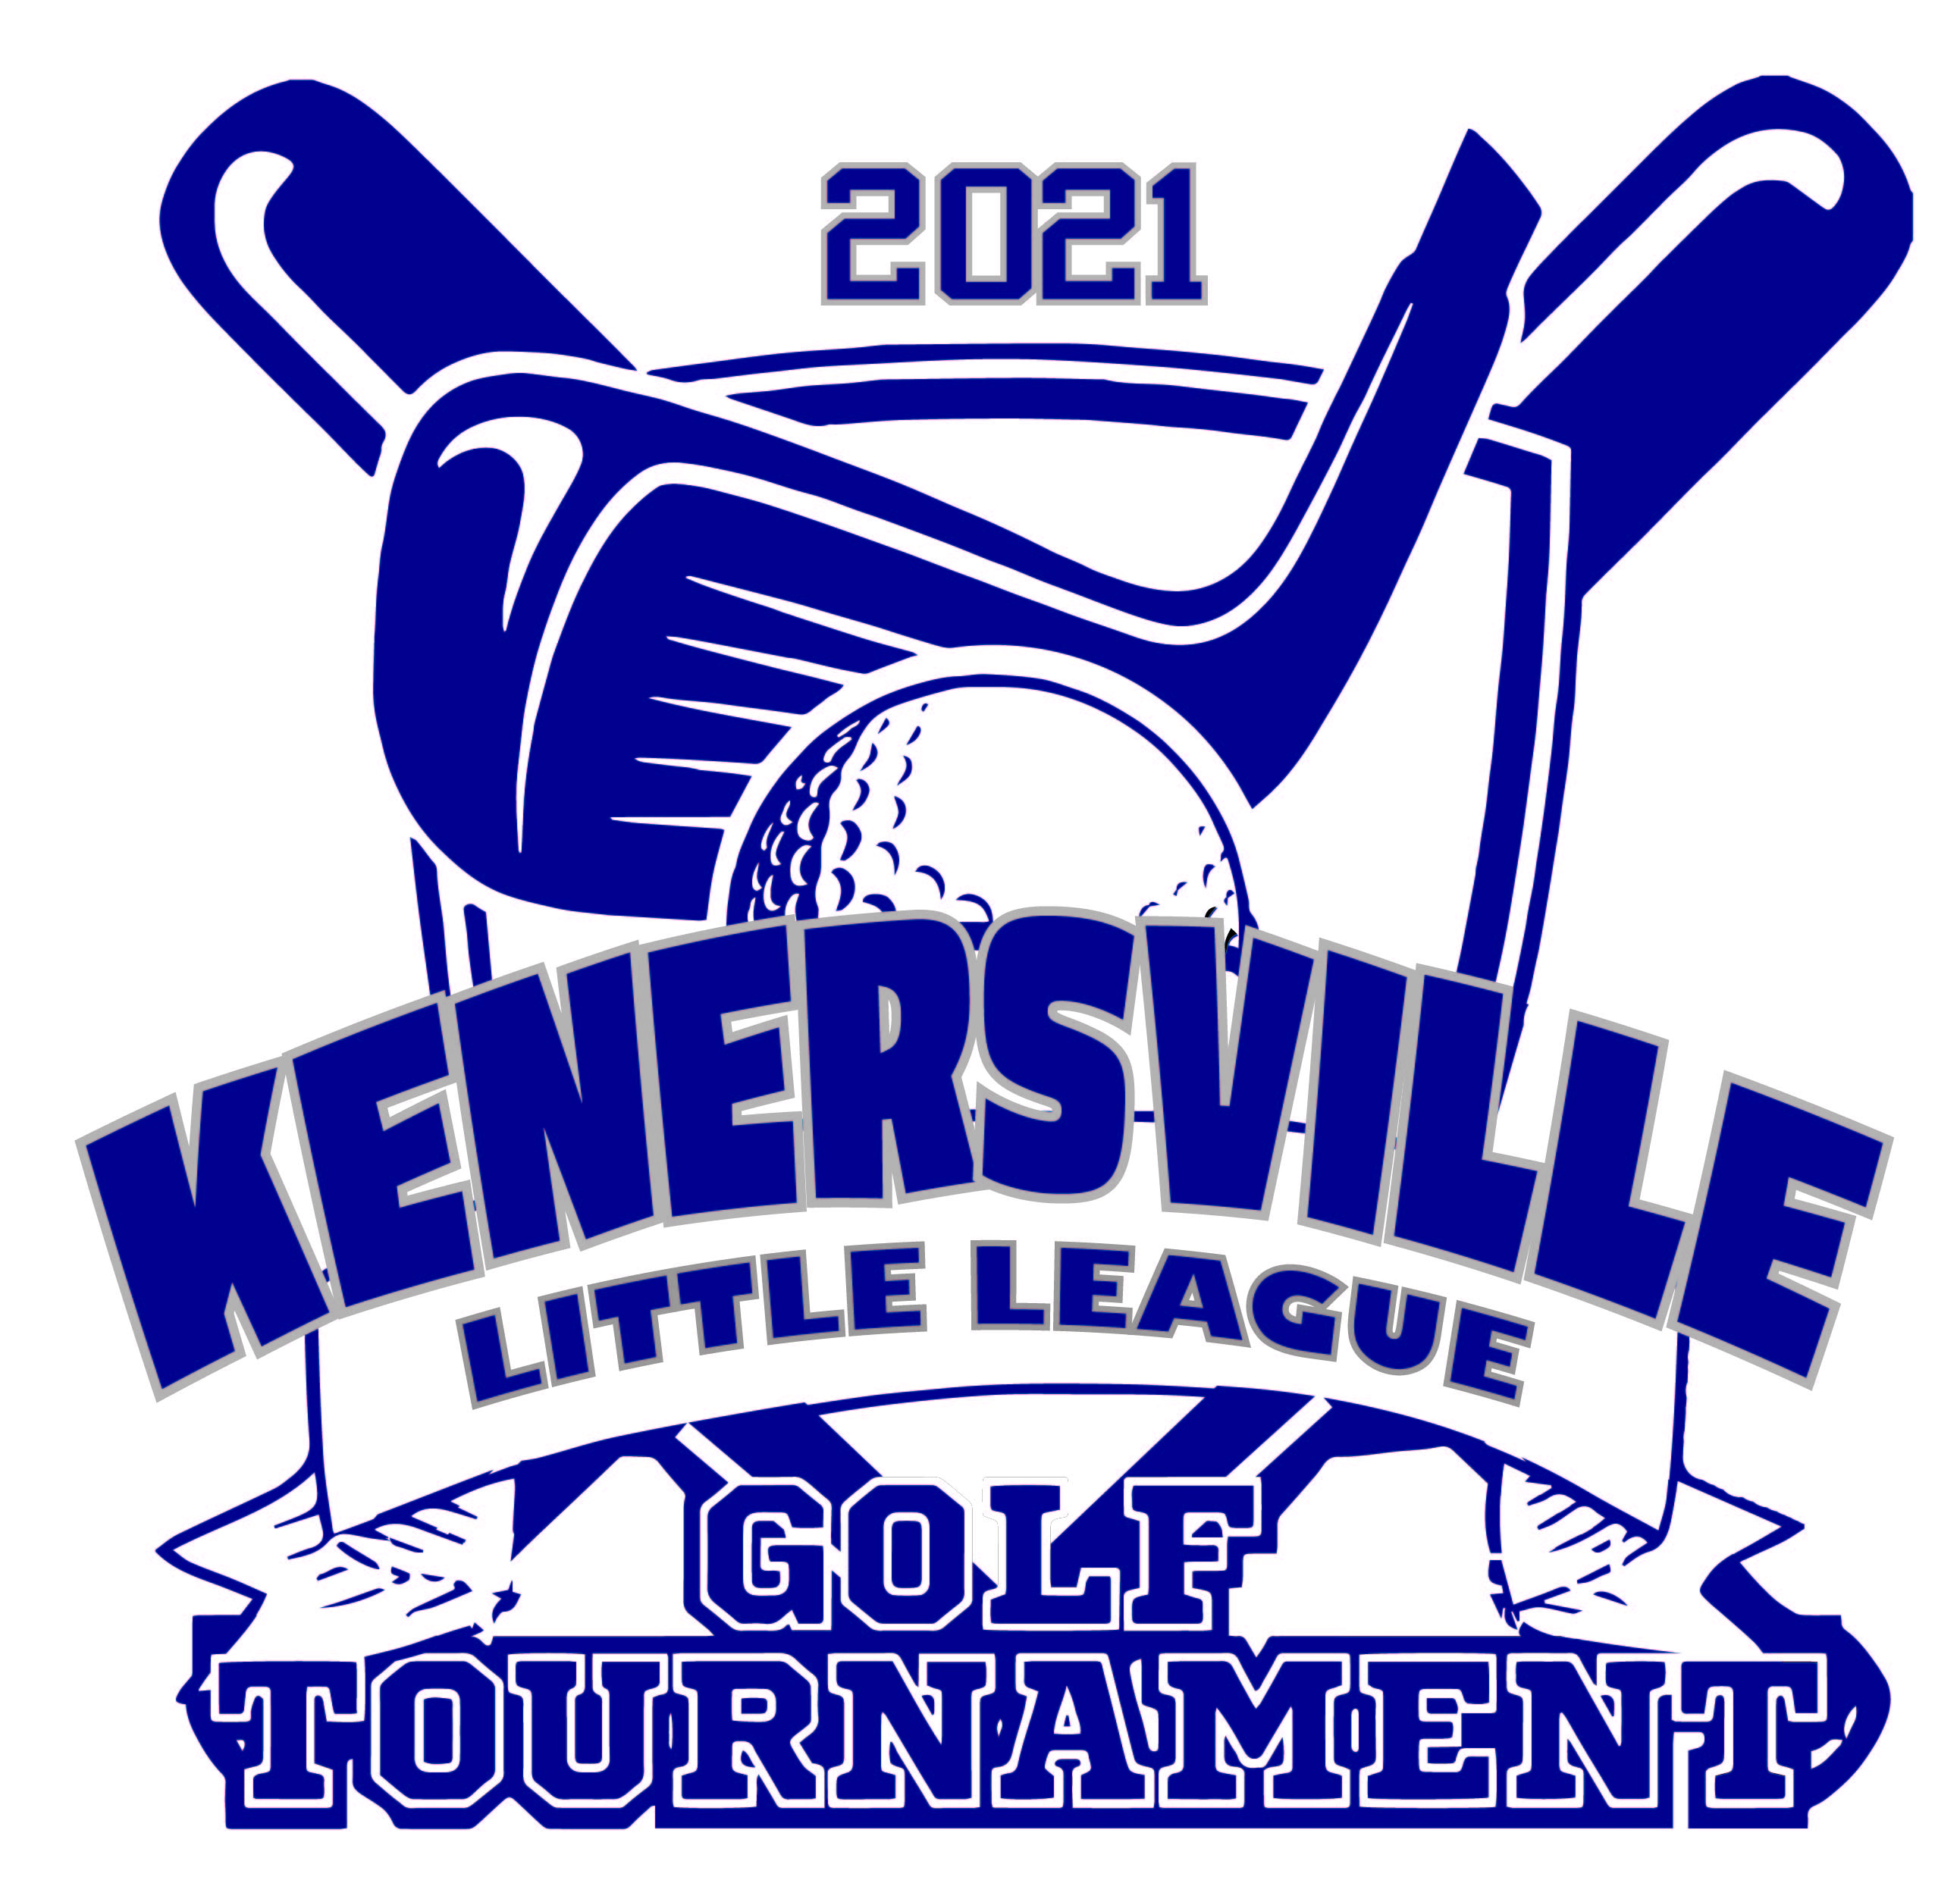 Kennersville Little League Golf Tournament logo